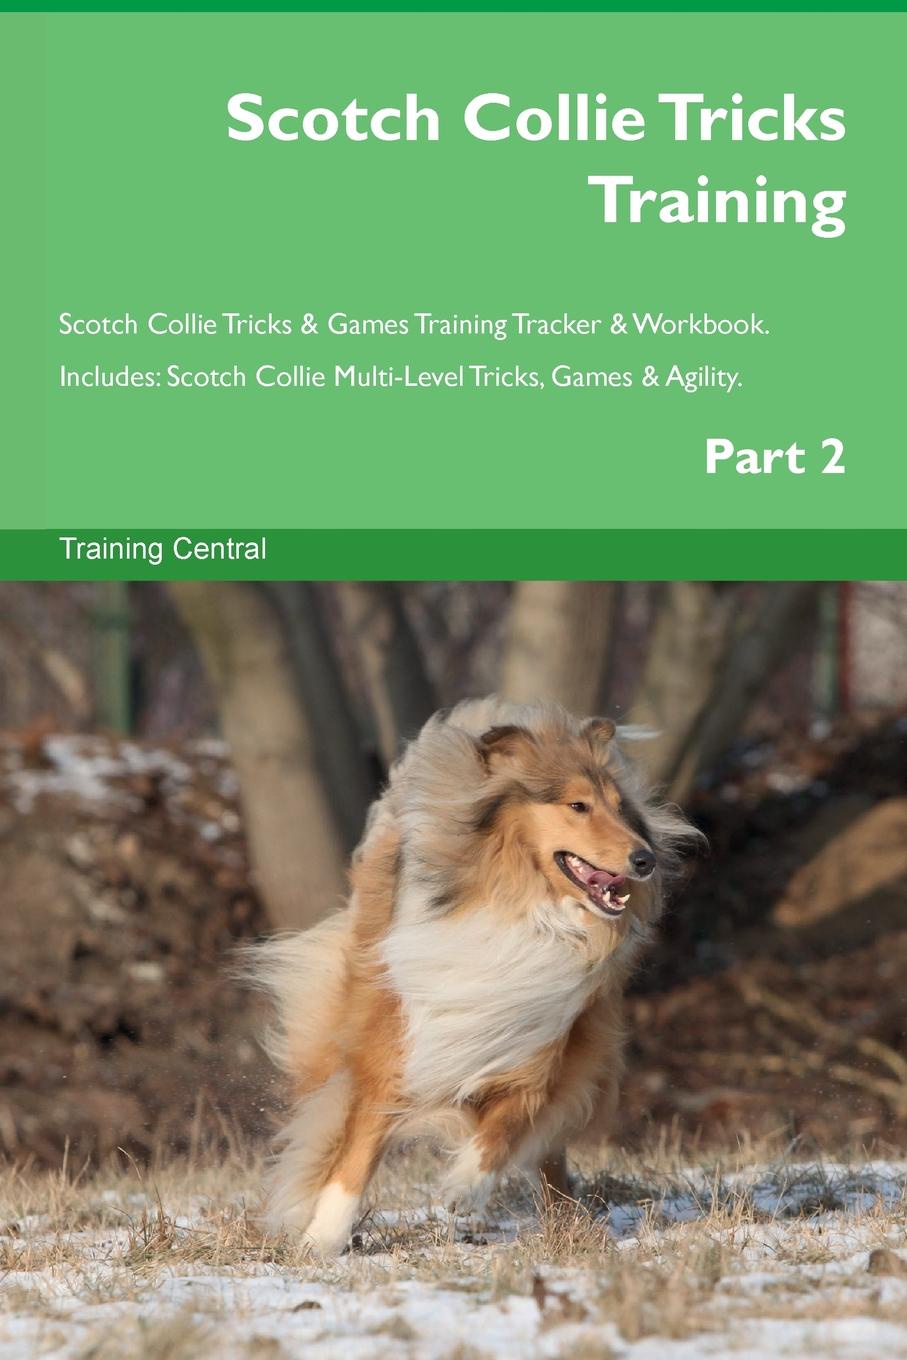 Training Central Scotch Collie Tricks Training Scotch Collie Tricks . Games Training Tracker . Workbook. Includes. Scotch Collie Multi-Level Tricks, Games . Agility. Part 2 this book loves you